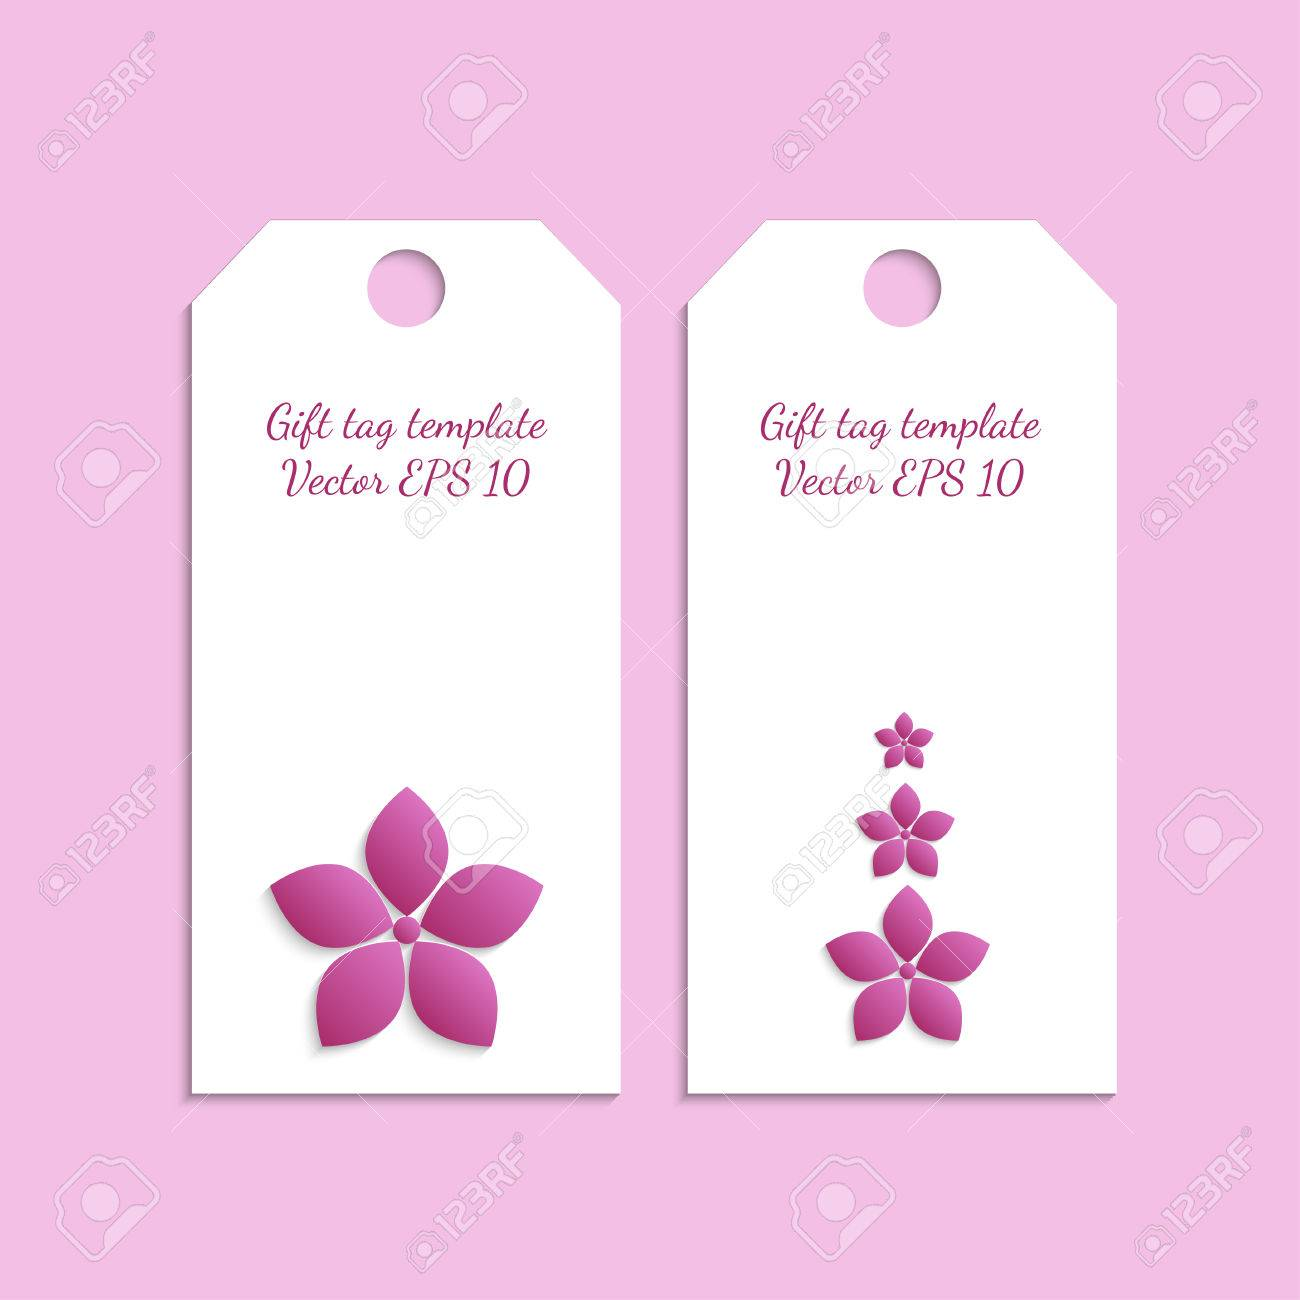 paper gift tag template with flower ornament on pink background